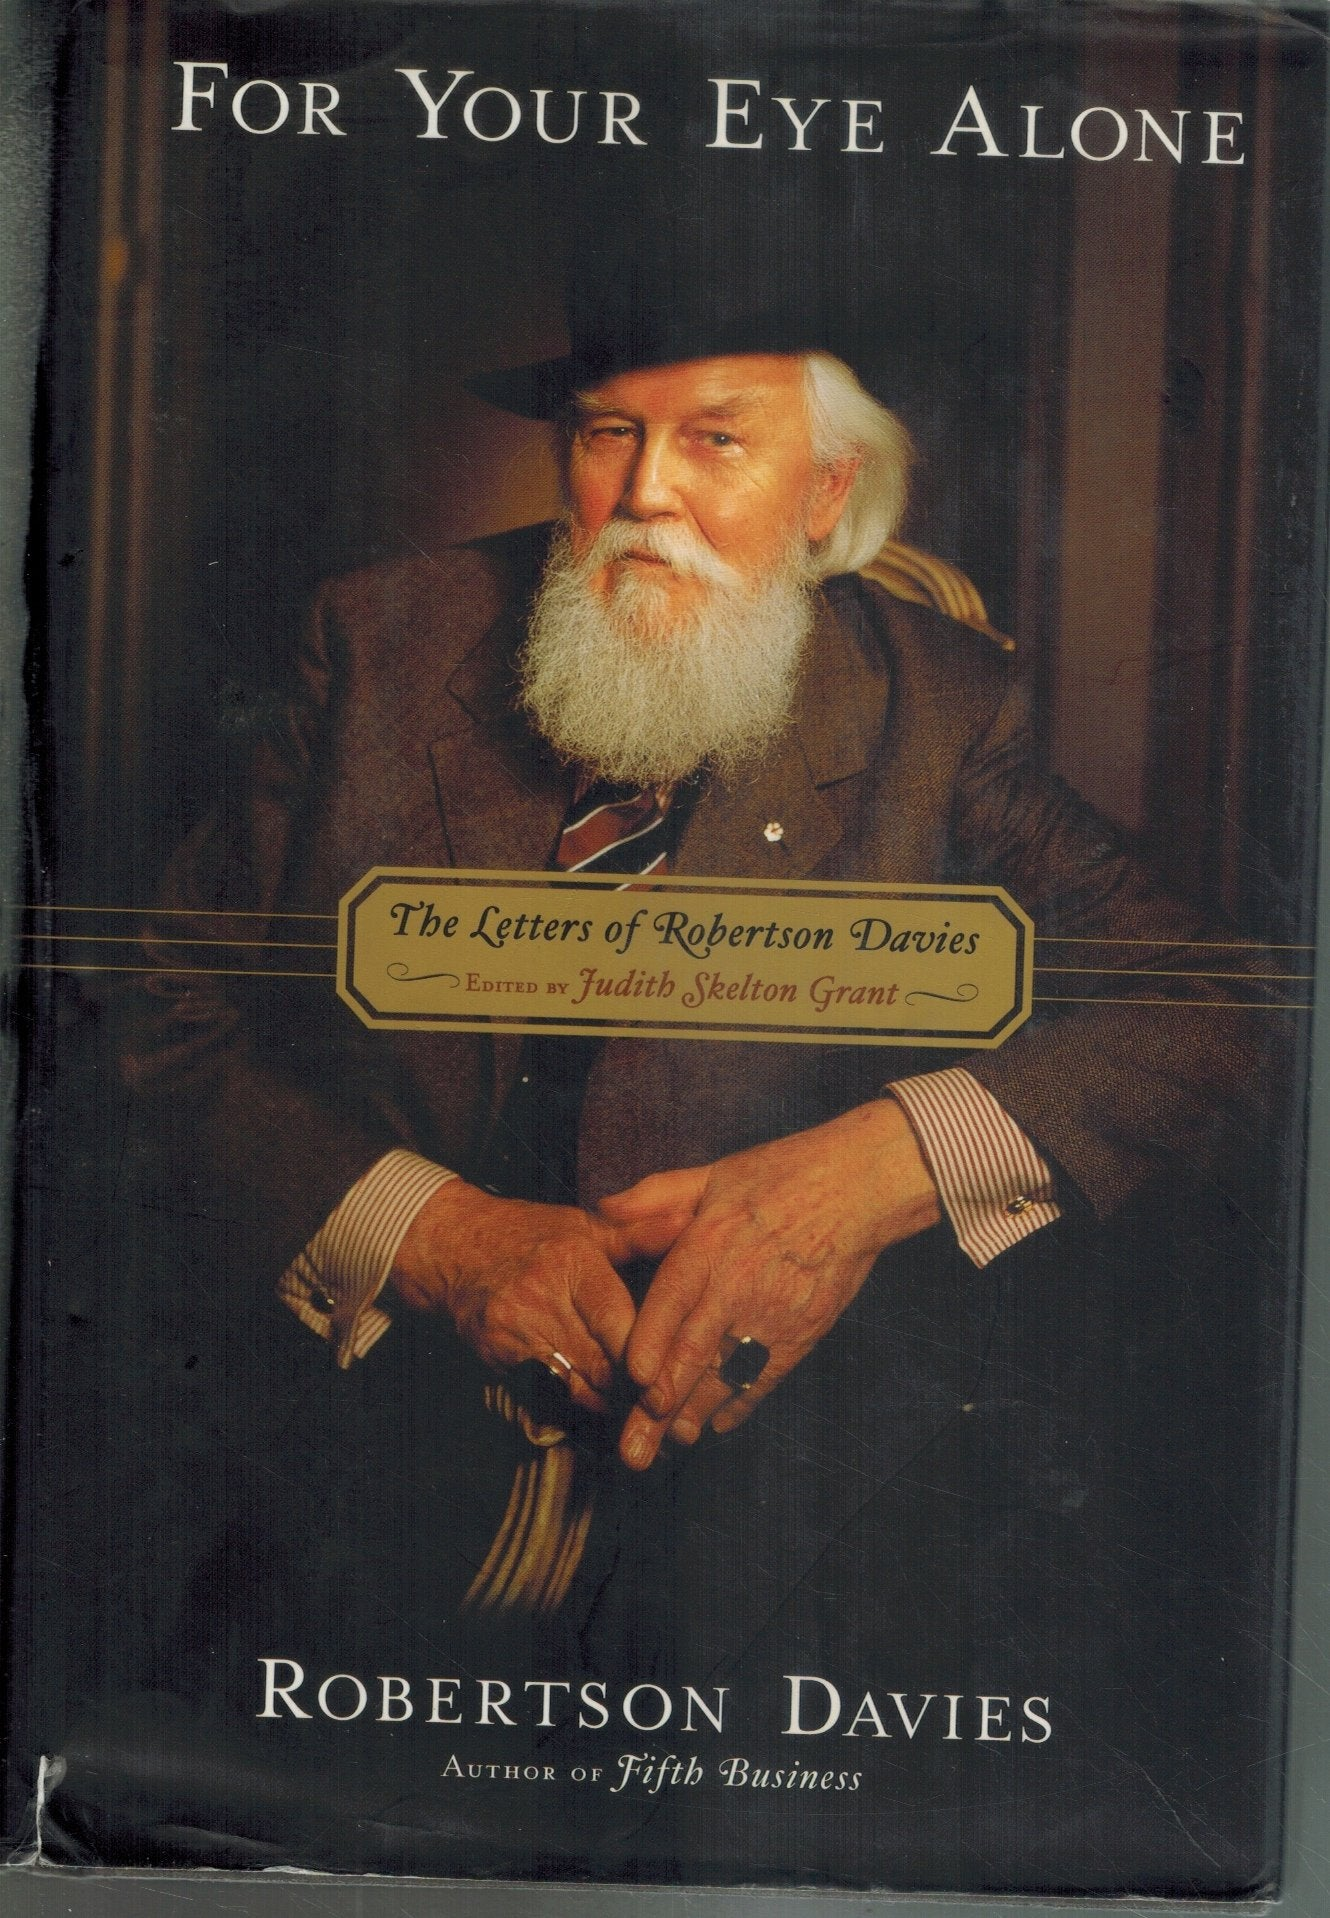 FOR YOUR EYE ALONE: THE LETTERS OF ROBERTSON DAVIES  by Davies, Robertson and Judith Skelton Grant